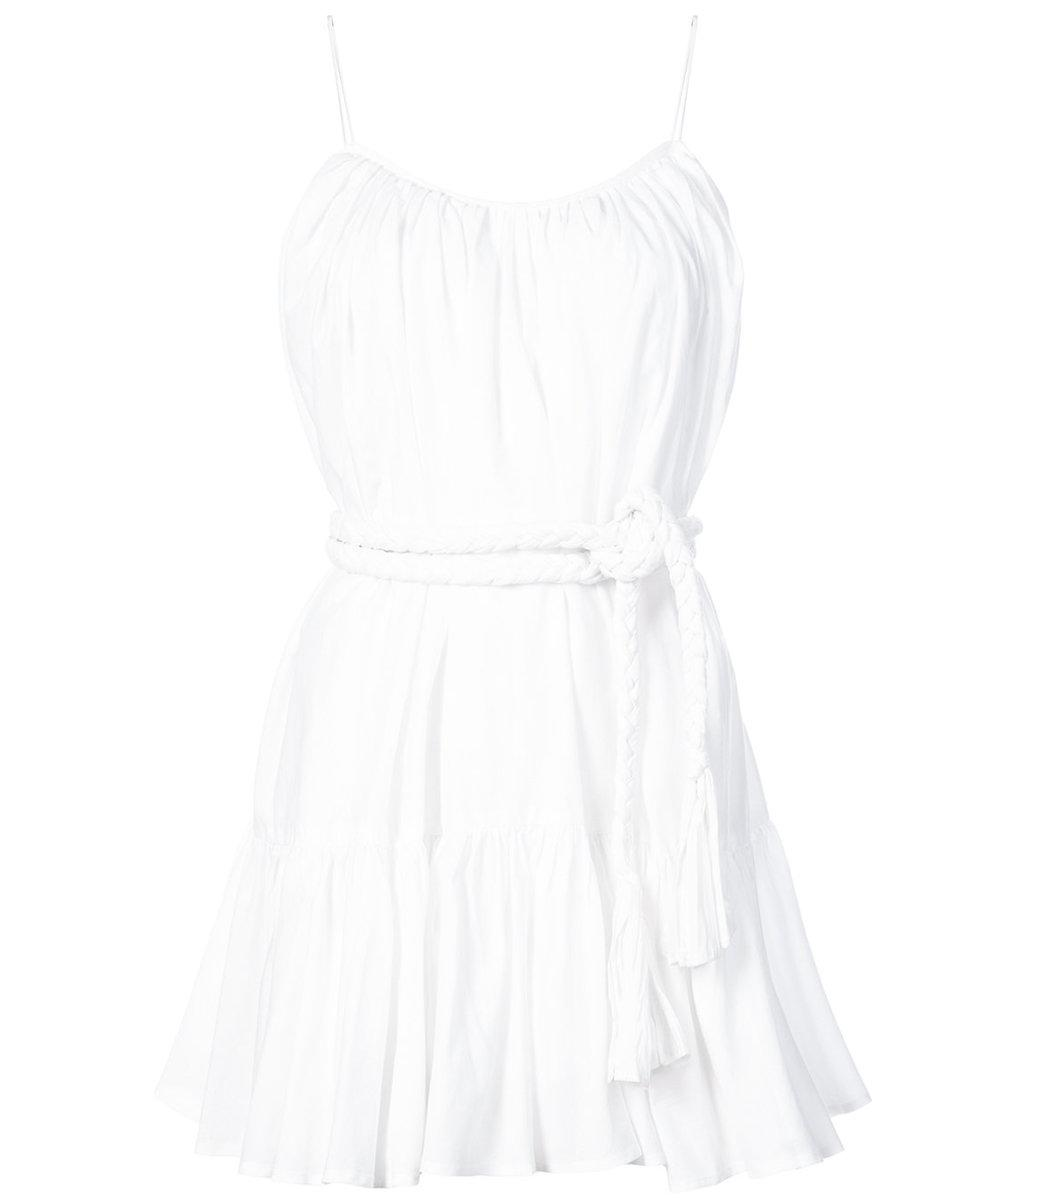 Nala Ruffled Cotton Tank - White Rhode Resort Factory Outlet Discount Aaa From China Cheap Online rMCC8I2kV